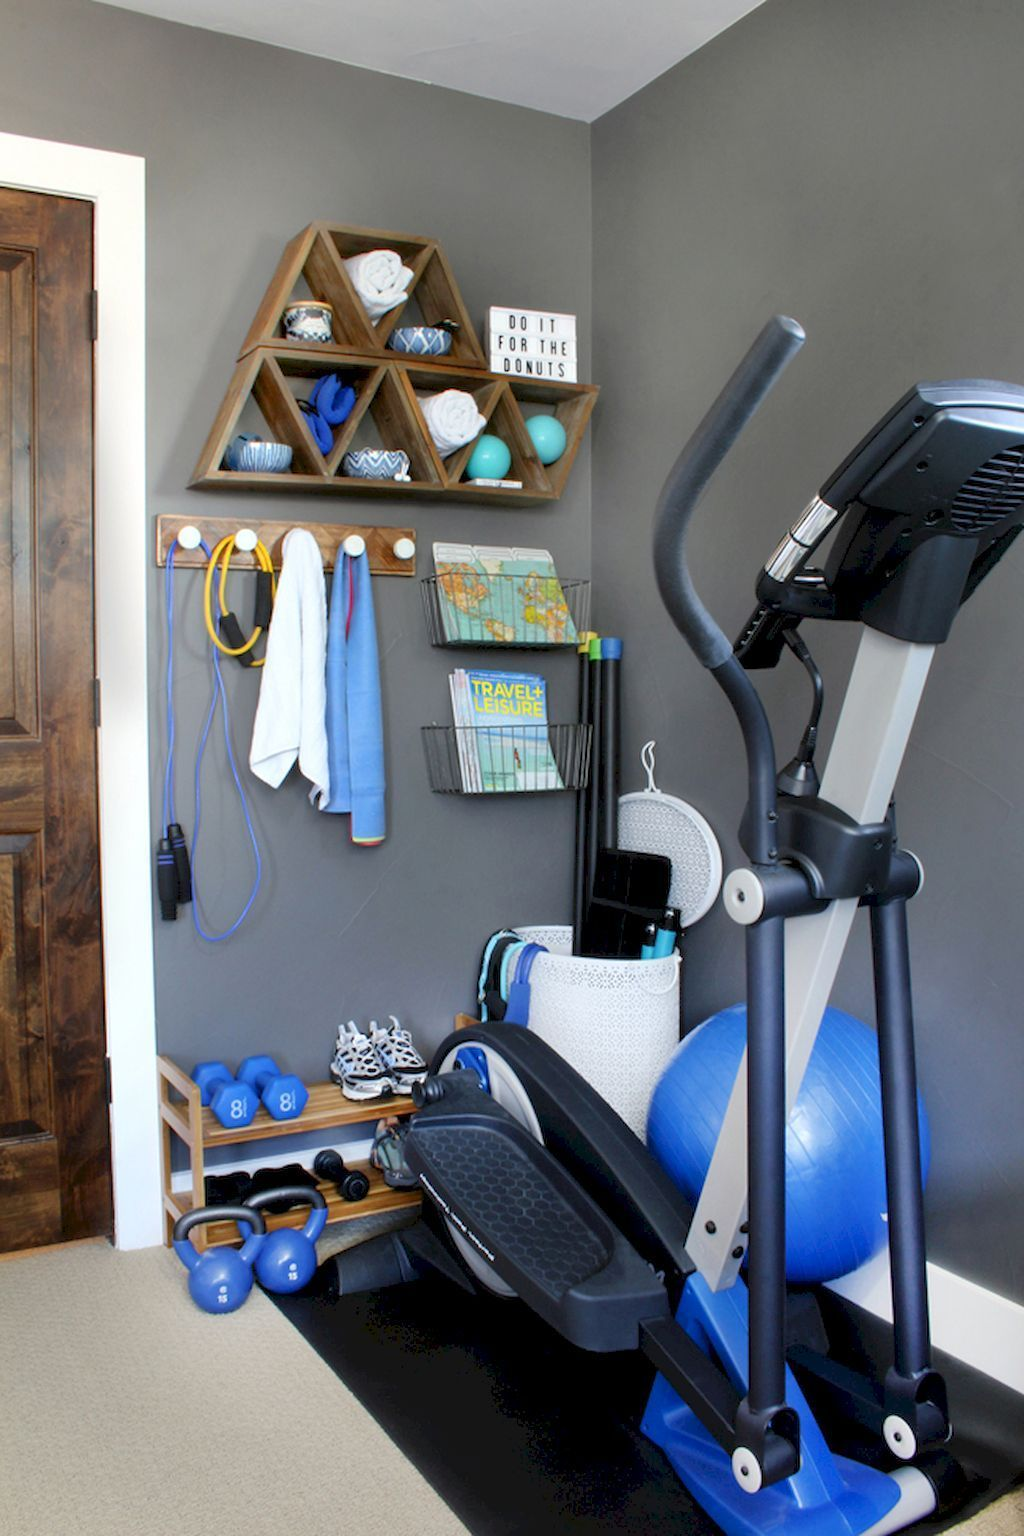 Adorable 60 Cool Home Gym Ideas Decoration on a Budget for Small Room coachdecor...